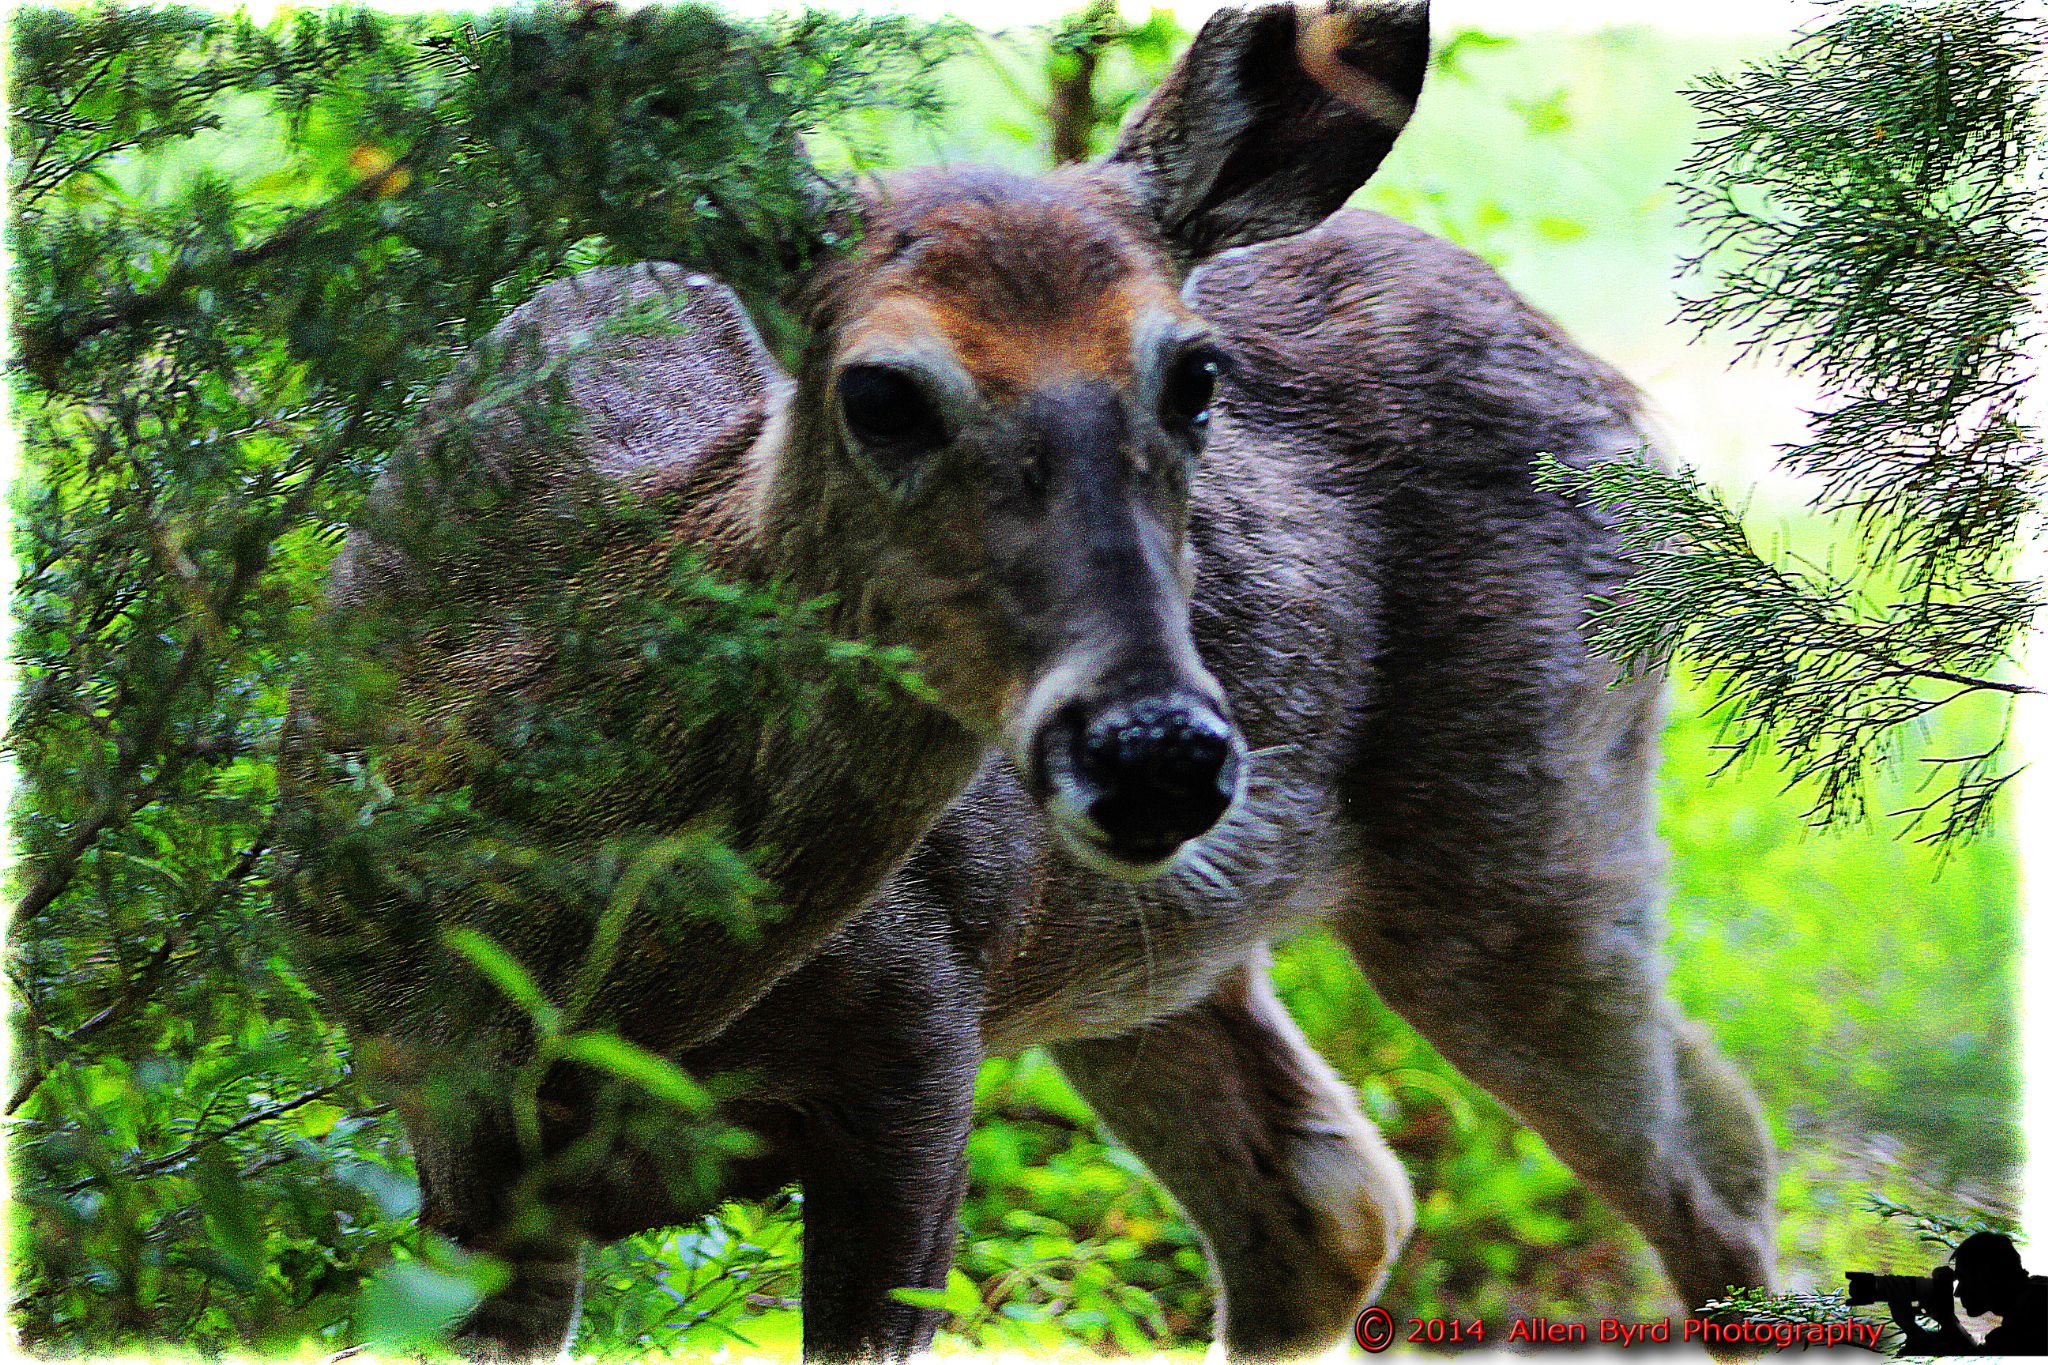 deer-1 by Allen Byrd Photography